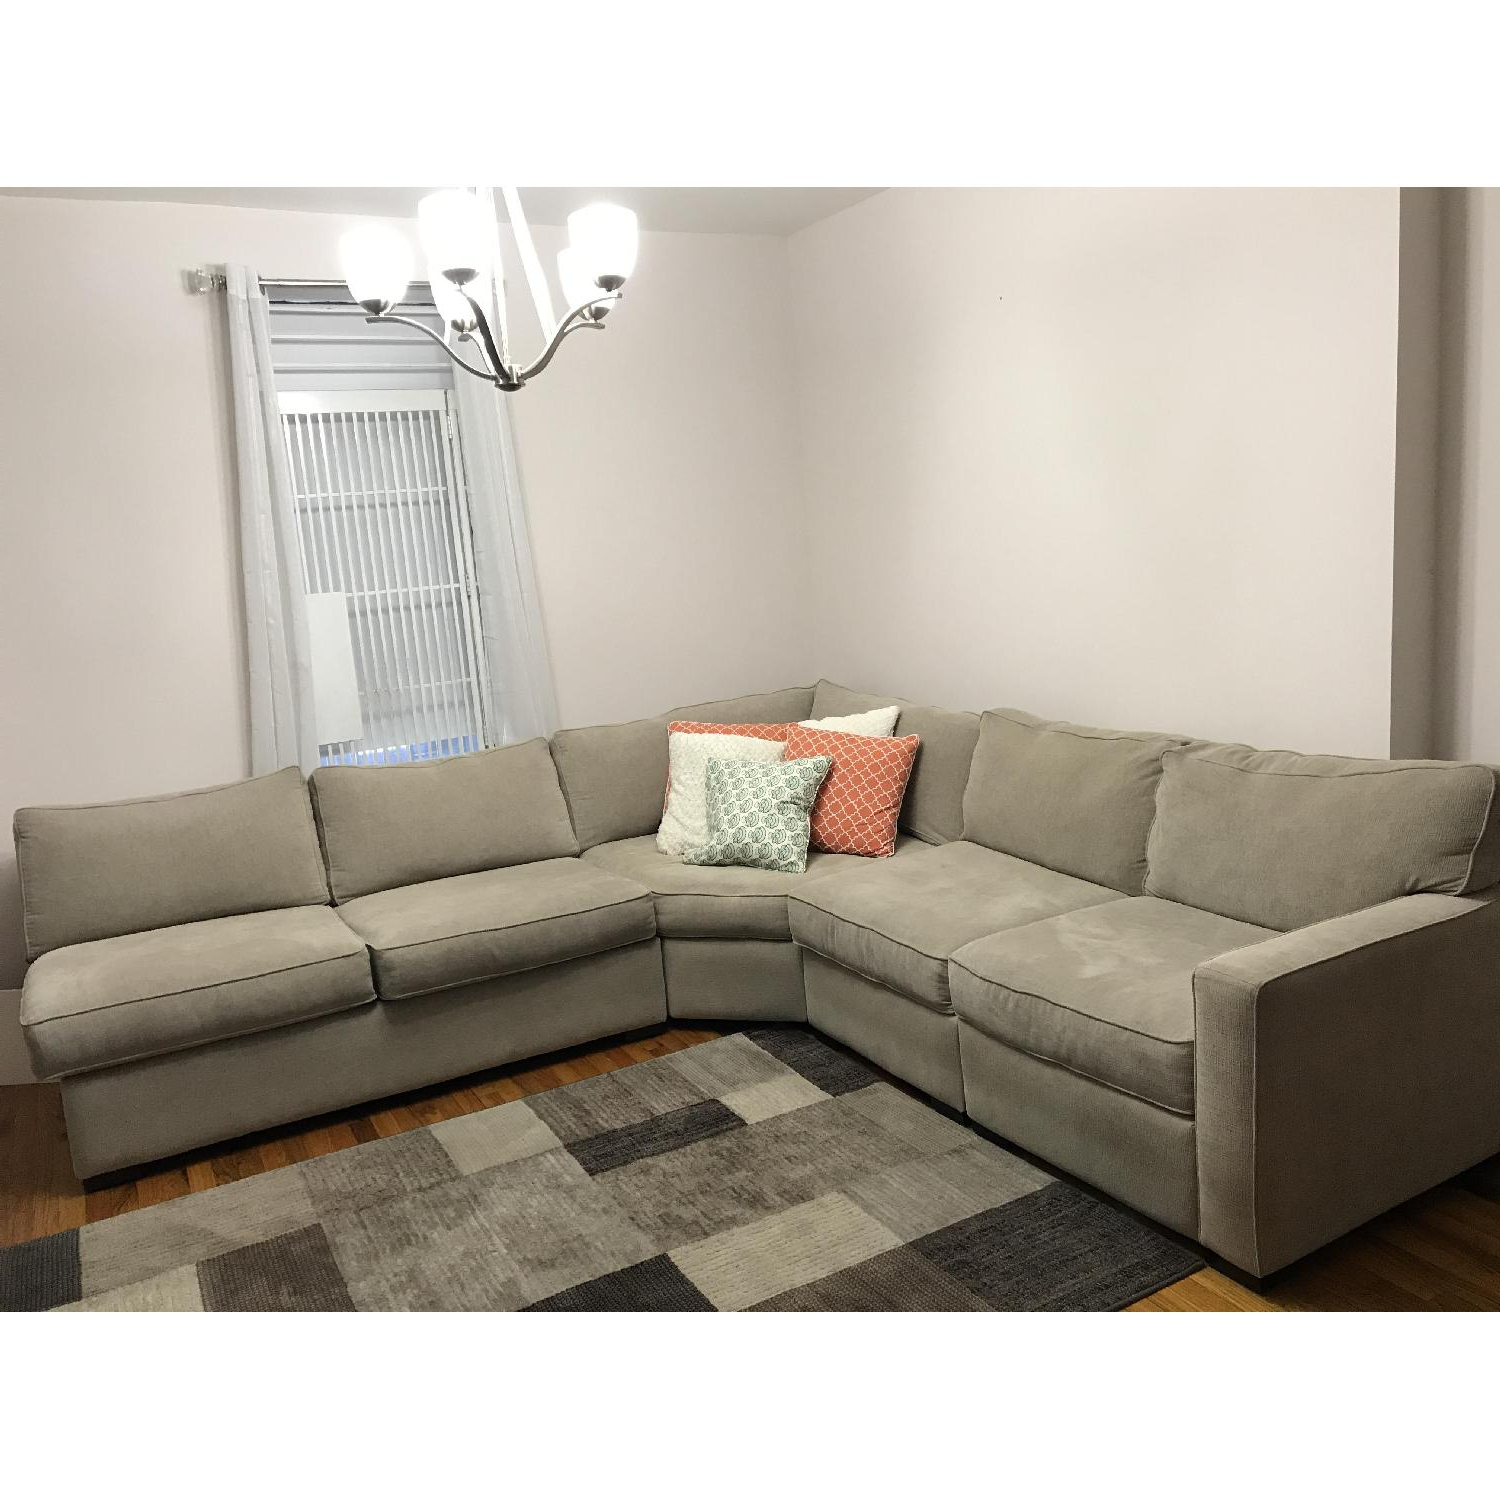 Magnolia Home Homestead 4 Piece Sectionals By Joanna Gaines Pertaining To Newest Magnolia Home Joanna Gaines Homestead Threece Sectional Sofa Destin (View 12 of 20)